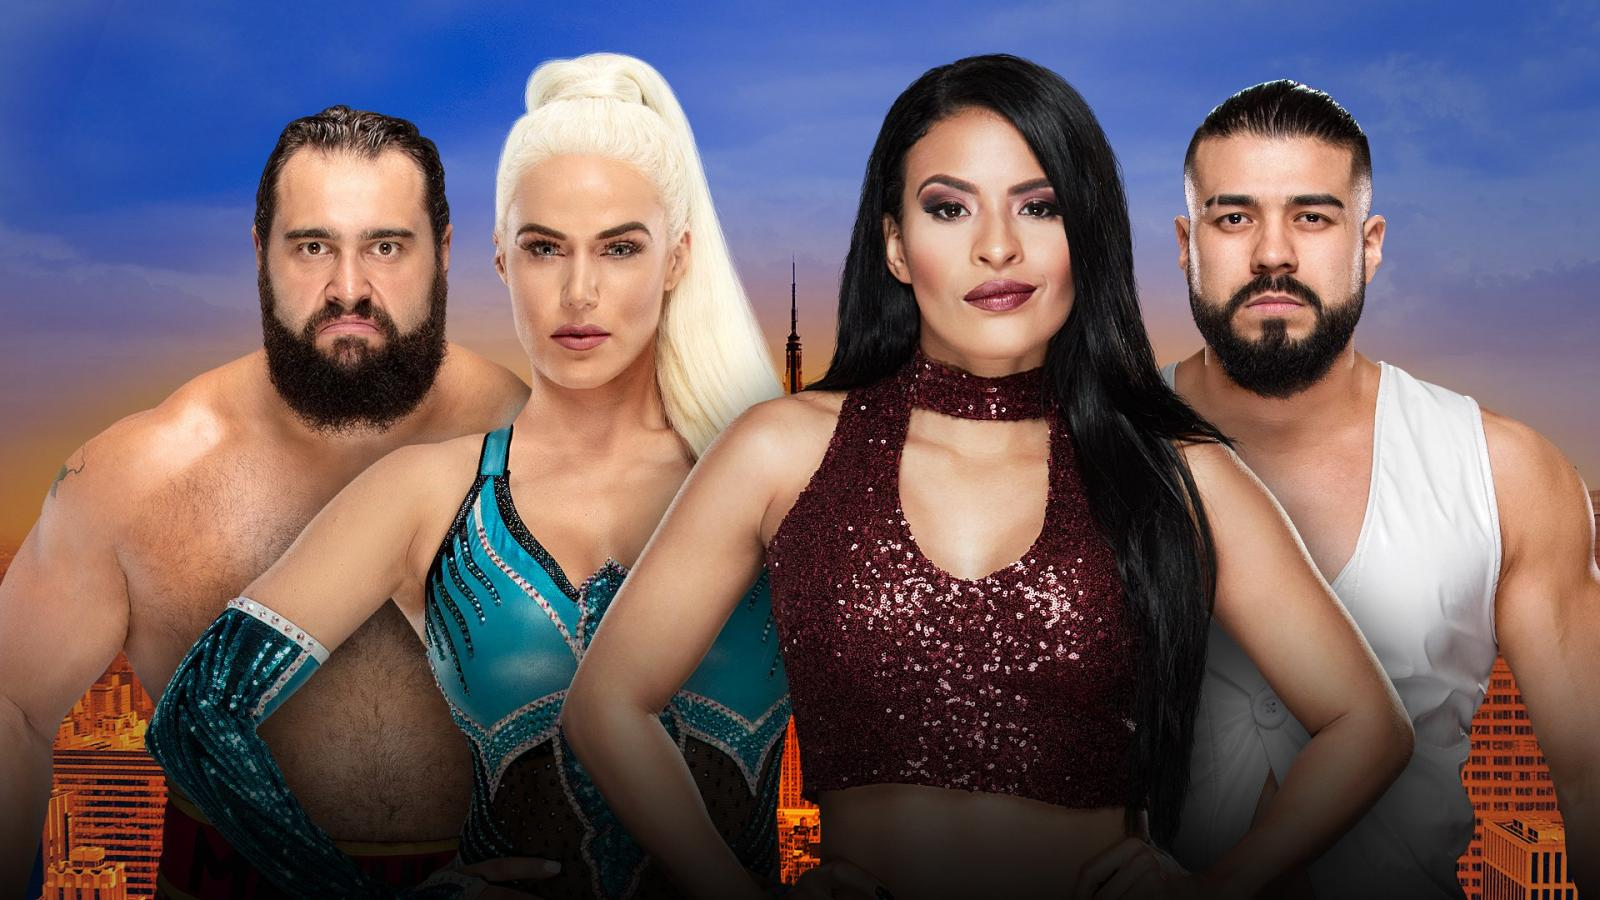 Mixed Tag Team Match Added To Wwe Summerslam Match Card